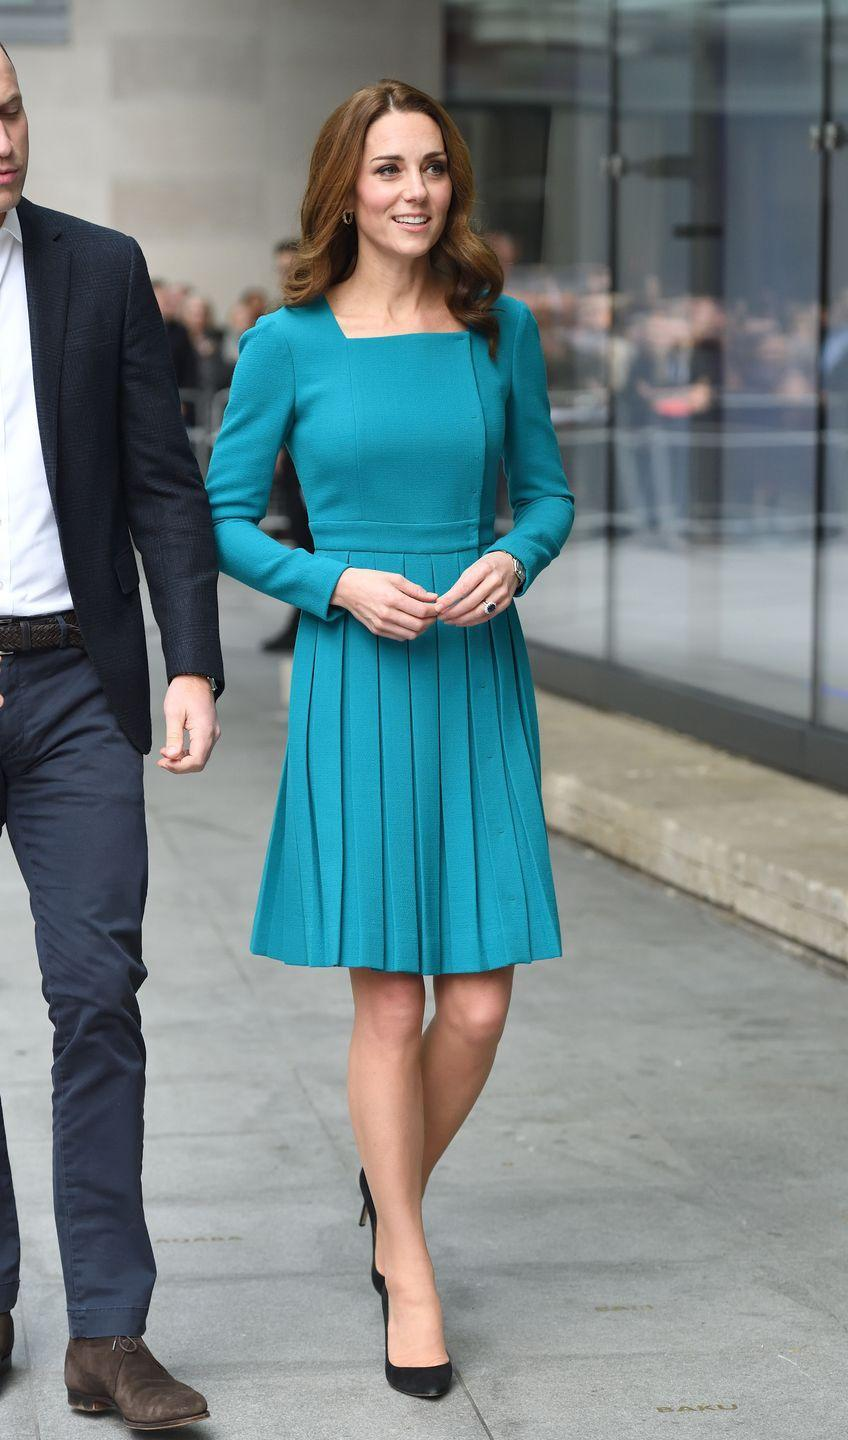 """<p>The Duke and Duchess of Cambridge visited the BBC headquarters to discuss William's Taskforce on the Prevention of Cyberbullying. Kate wore a turquoise <a href=""""https://go.redirectingat.com?id=74968X1596630&url=https%3A%2F%2Fwww.modaoperandi.com%2Femilia-wickstead&sref=https%3A%2F%2Fwww.townandcountrymag.com%2Fstyle%2Ffashion-trends%2Fnews%2Fg1633%2Fkate-middleton-fashion%2F"""" rel=""""nofollow noopener"""" target=""""_blank"""" data-ylk=""""slk:Emilia Wickstead"""" class=""""link rapid-noclick-resp"""">Emilia Wickstead</a> dress, recycled from an appearance in 2014, paired with <a href=""""https://go.redirectingat.com?id=74968X1596630&url=https%3A%2F%2Fwww.lkbennett.com%2FOccasionwear%2FOccasion-Shoes&sref=https%3A%2F%2Fwww.townandcountrymag.com%2Fstyle%2Ffashion-trends%2Fnews%2Fg1633%2Fkate-middleton-fashion%2F"""" rel=""""nofollow noopener"""" target=""""_blank"""" data-ylk=""""slk:black heels from LK Bennet"""" class=""""link rapid-noclick-resp"""">black heels from LK Bennet</a> for the visit.</p>"""